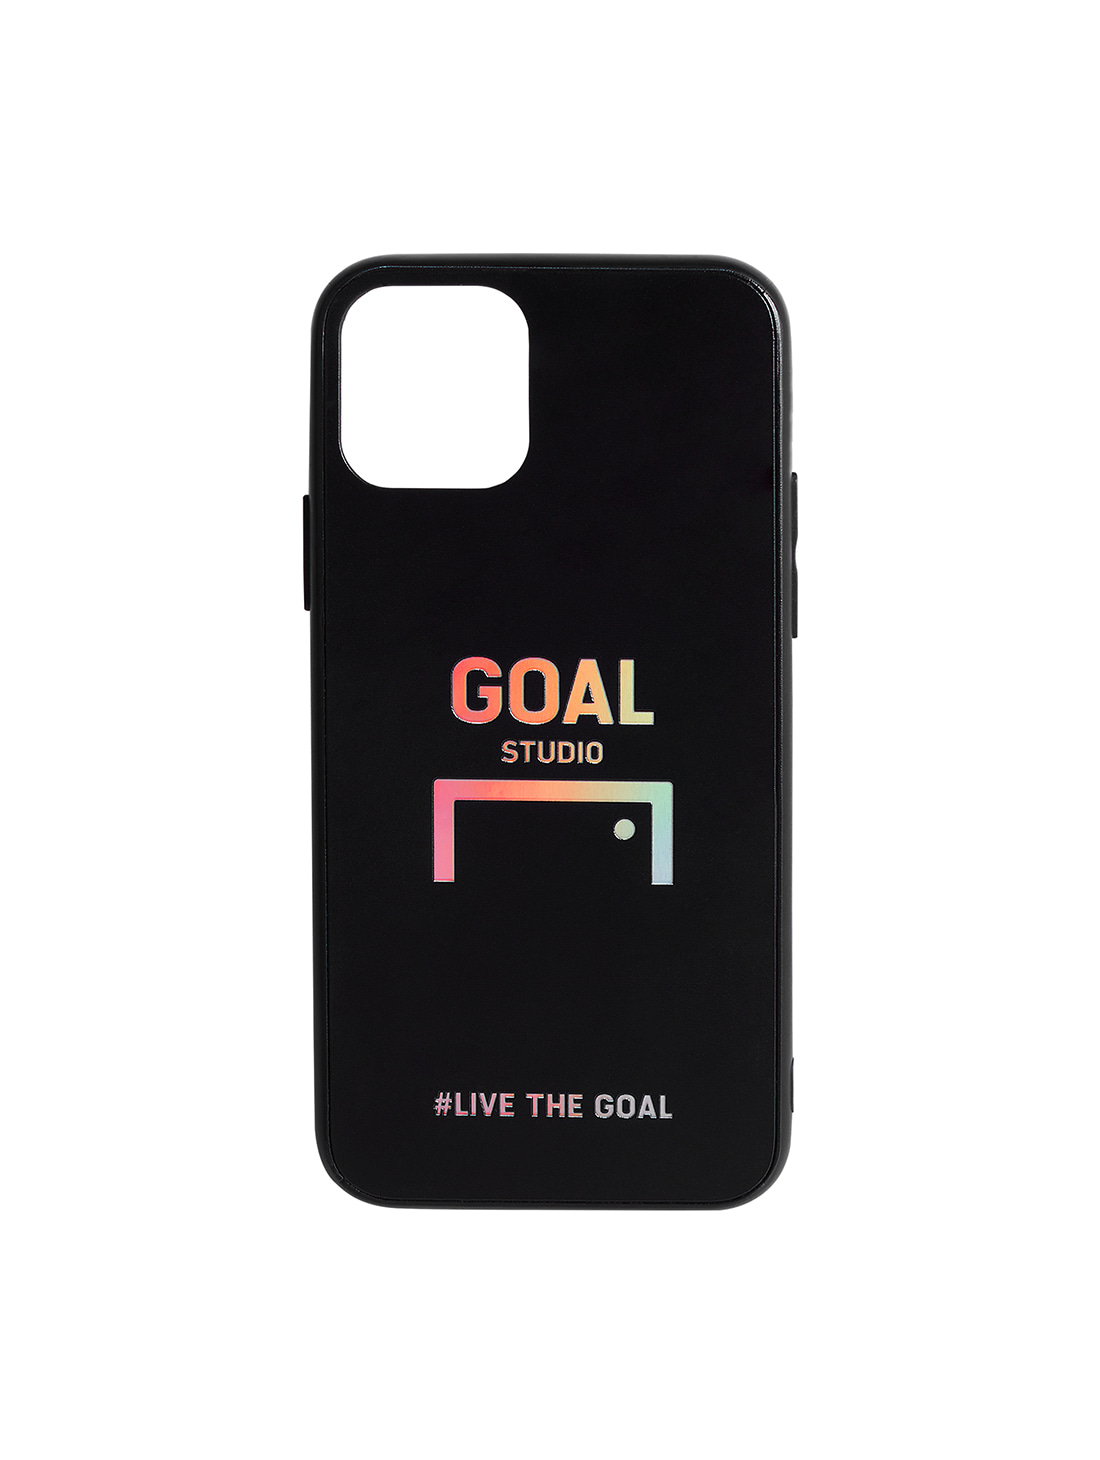 GOALSTUDIO HOLOGRAM PHONE CASE (iPhone)